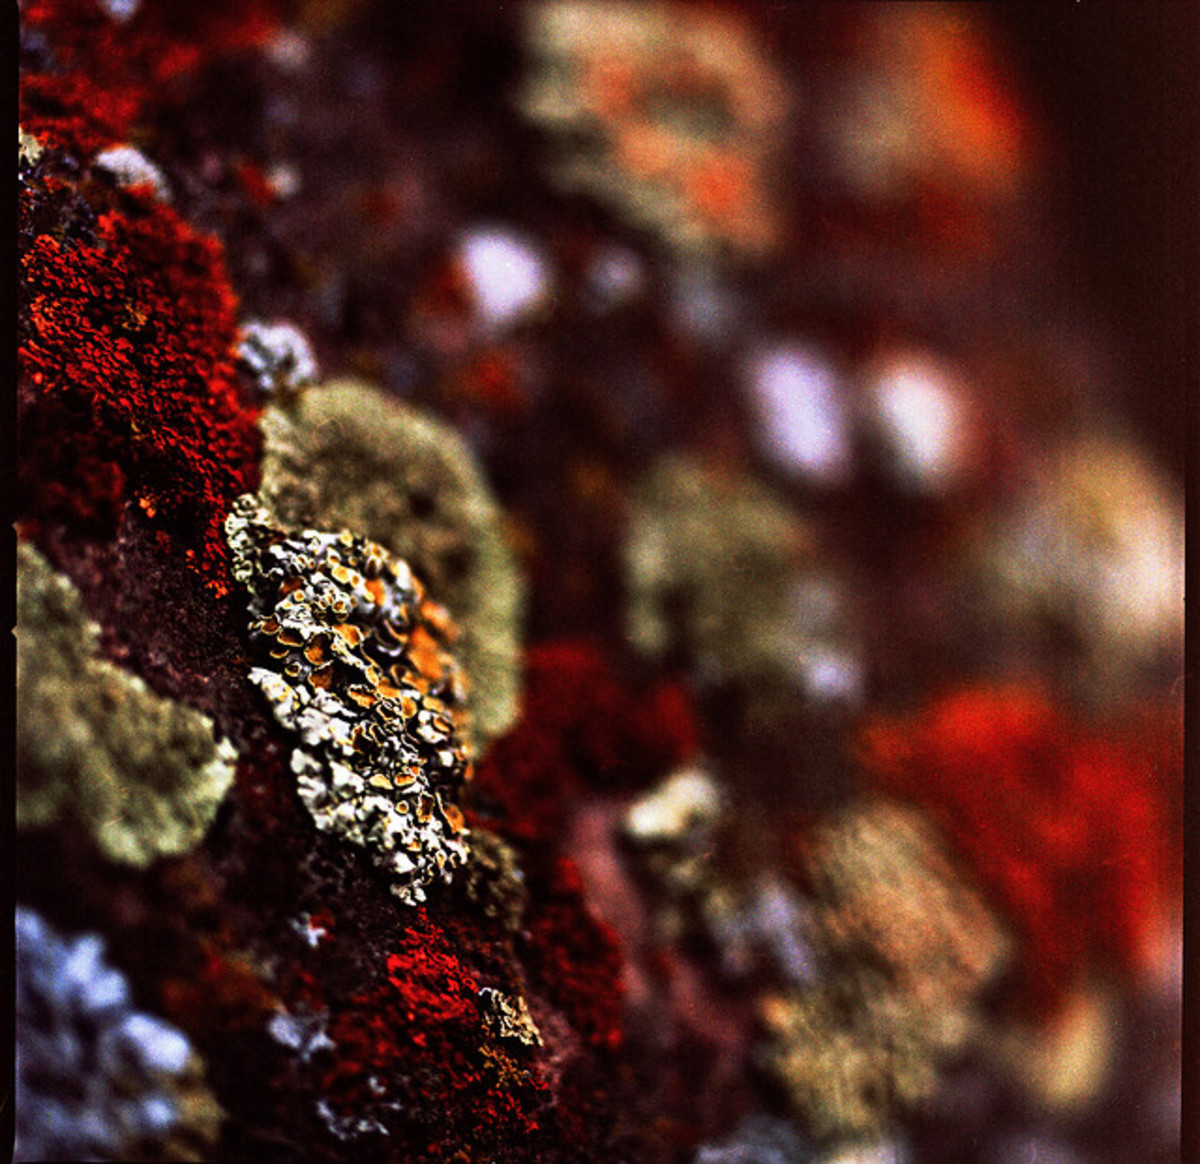 This lichen colony exhibits some truly striking colors.